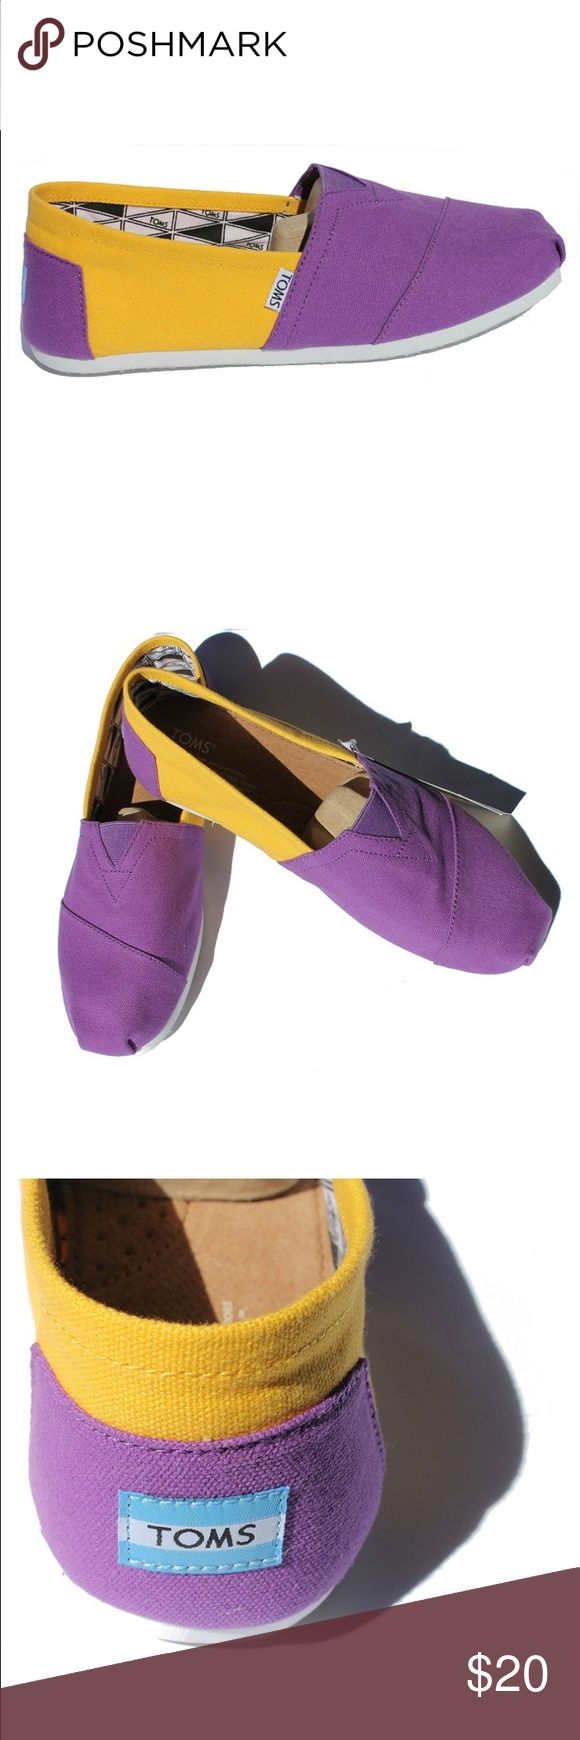 Men's TOMS Campus East Carolina University Men's TOMS Campus Classics Shoe East Carolina University.fabric, Comfortable. Shipped without box. TOMS Shoes Loafers & Slip-Ons